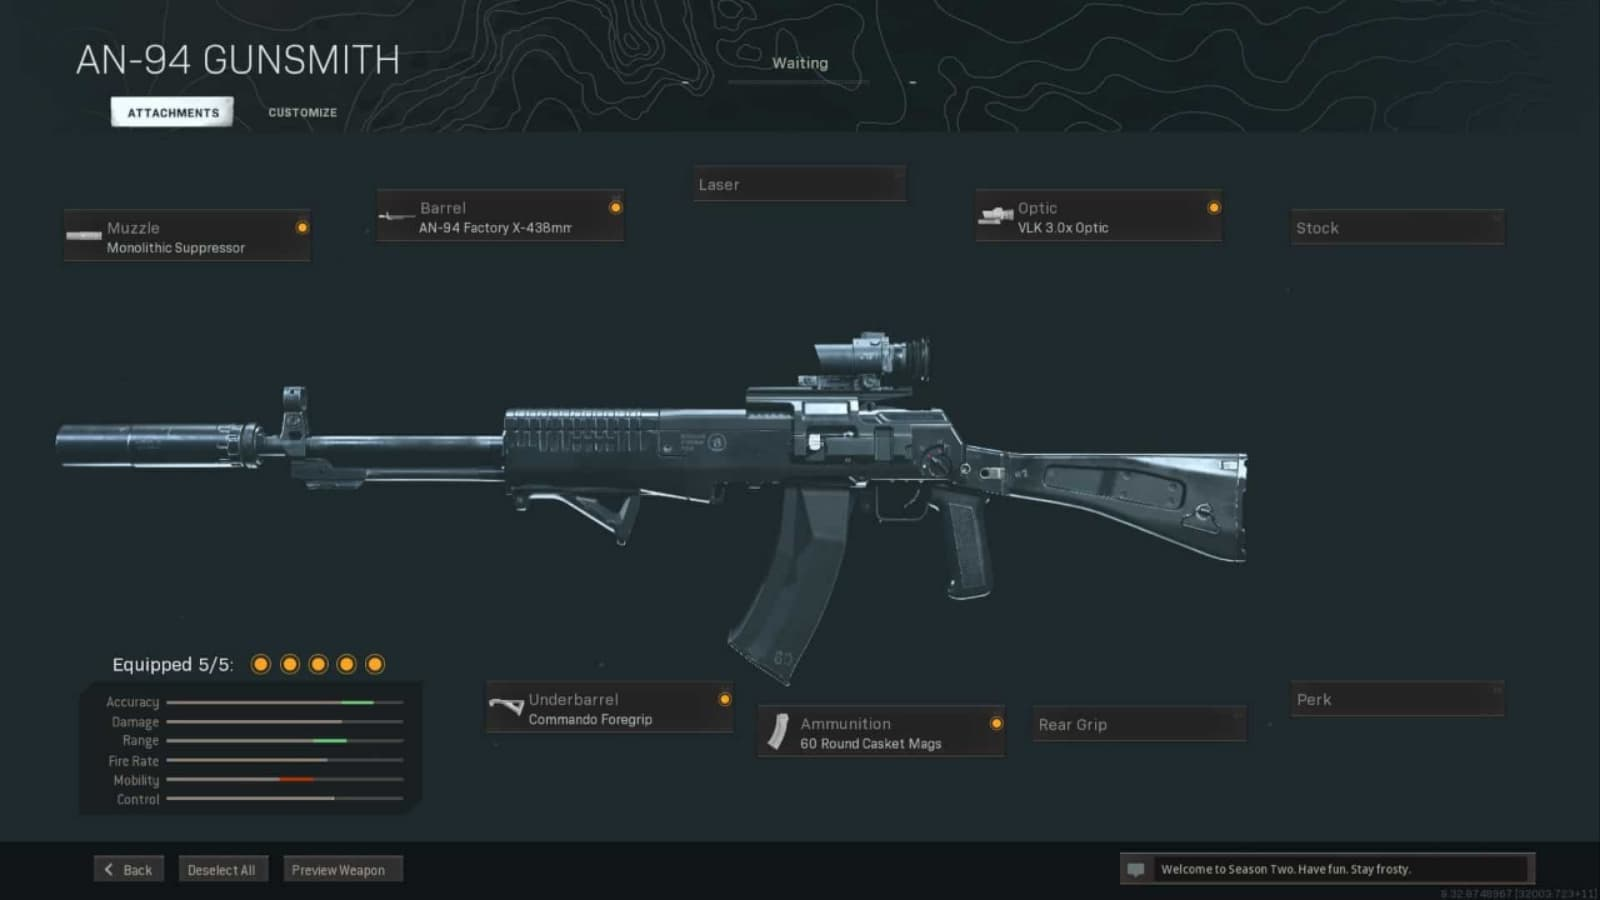 The Best AN-94 Warzone Loadout with Details